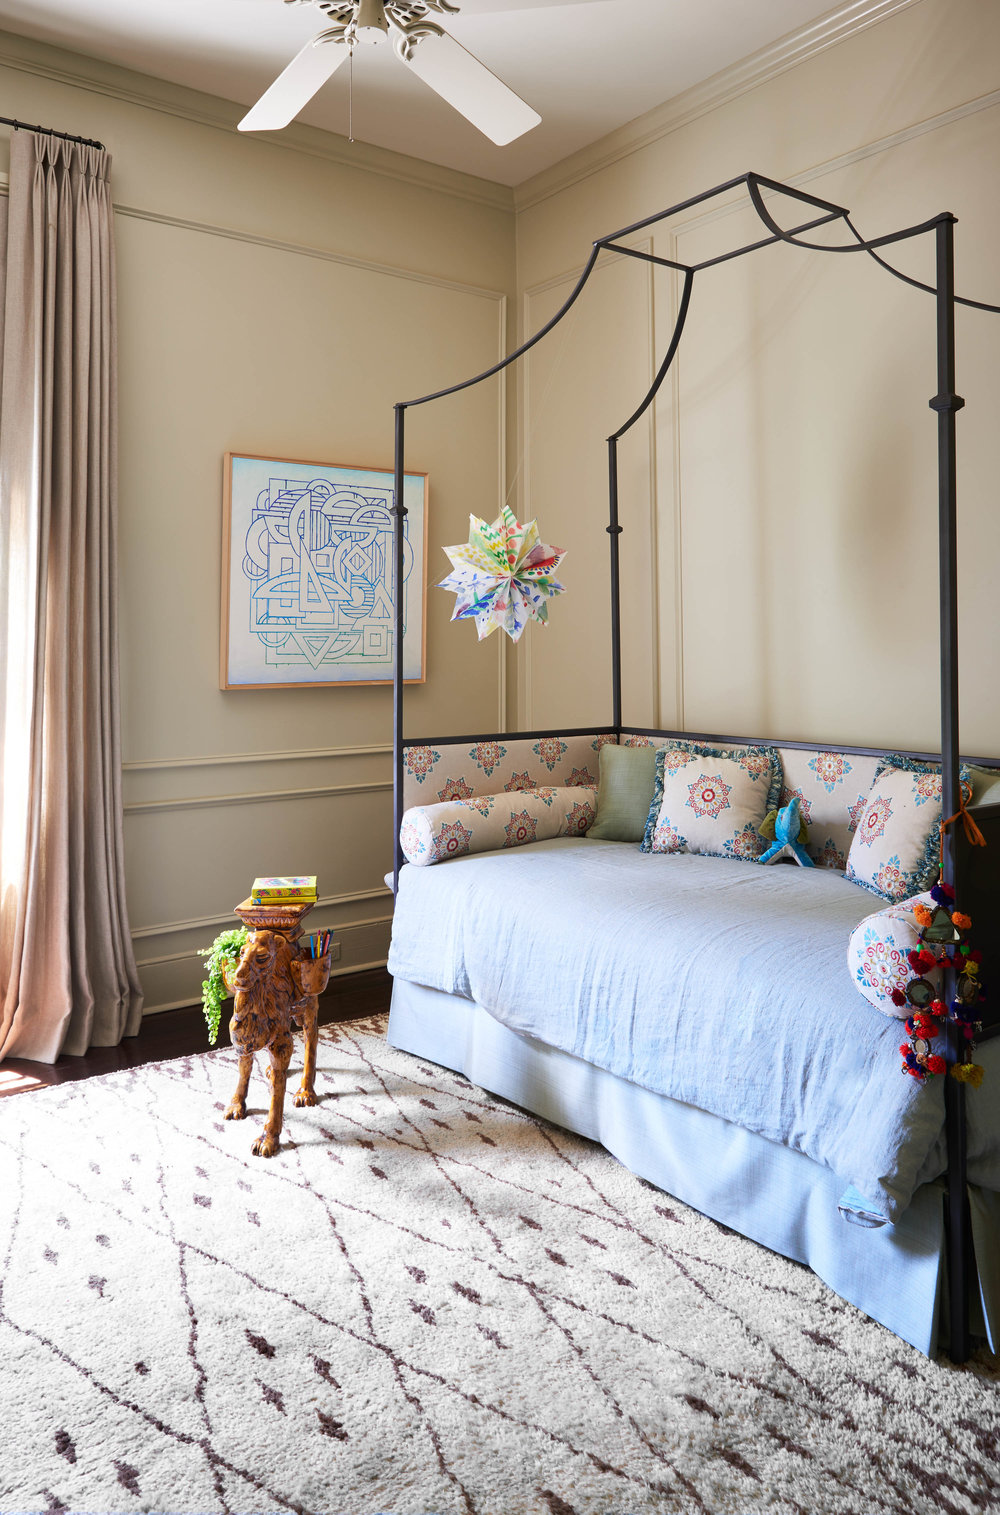 A custom-forged iron daybed in one of the girls' rooms.